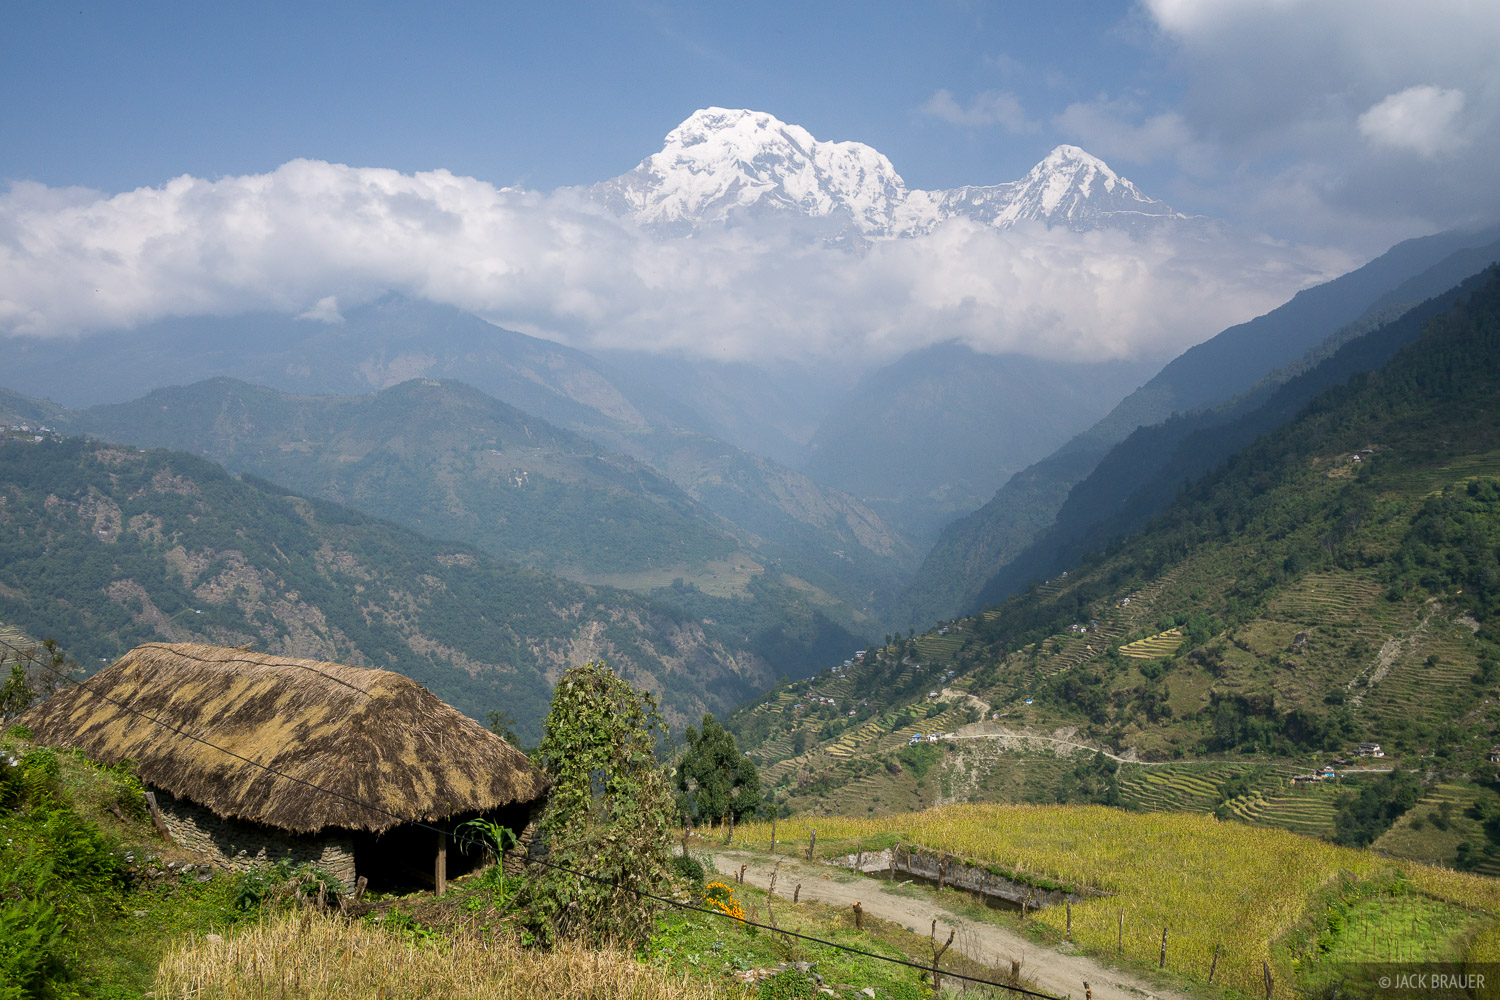 Annapurna South (7219m / 23,684 ft.) as seen from near Tolka.